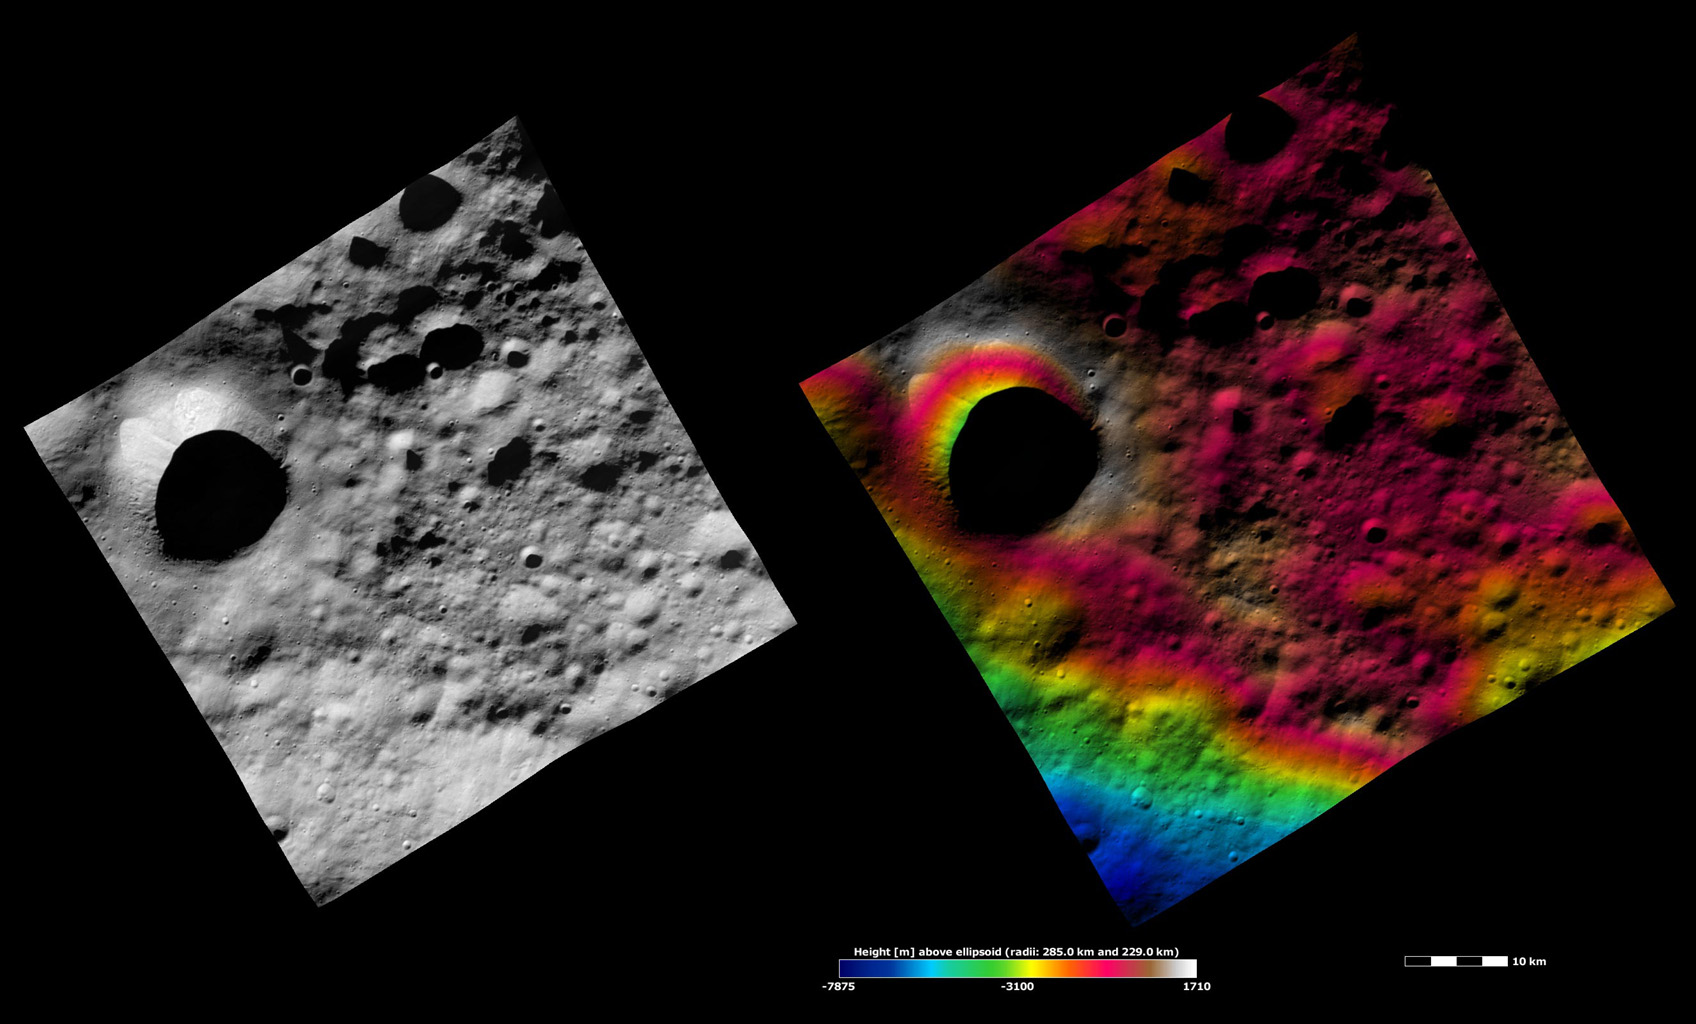 Apparent Brightness and Topography Images of Scantia Crater